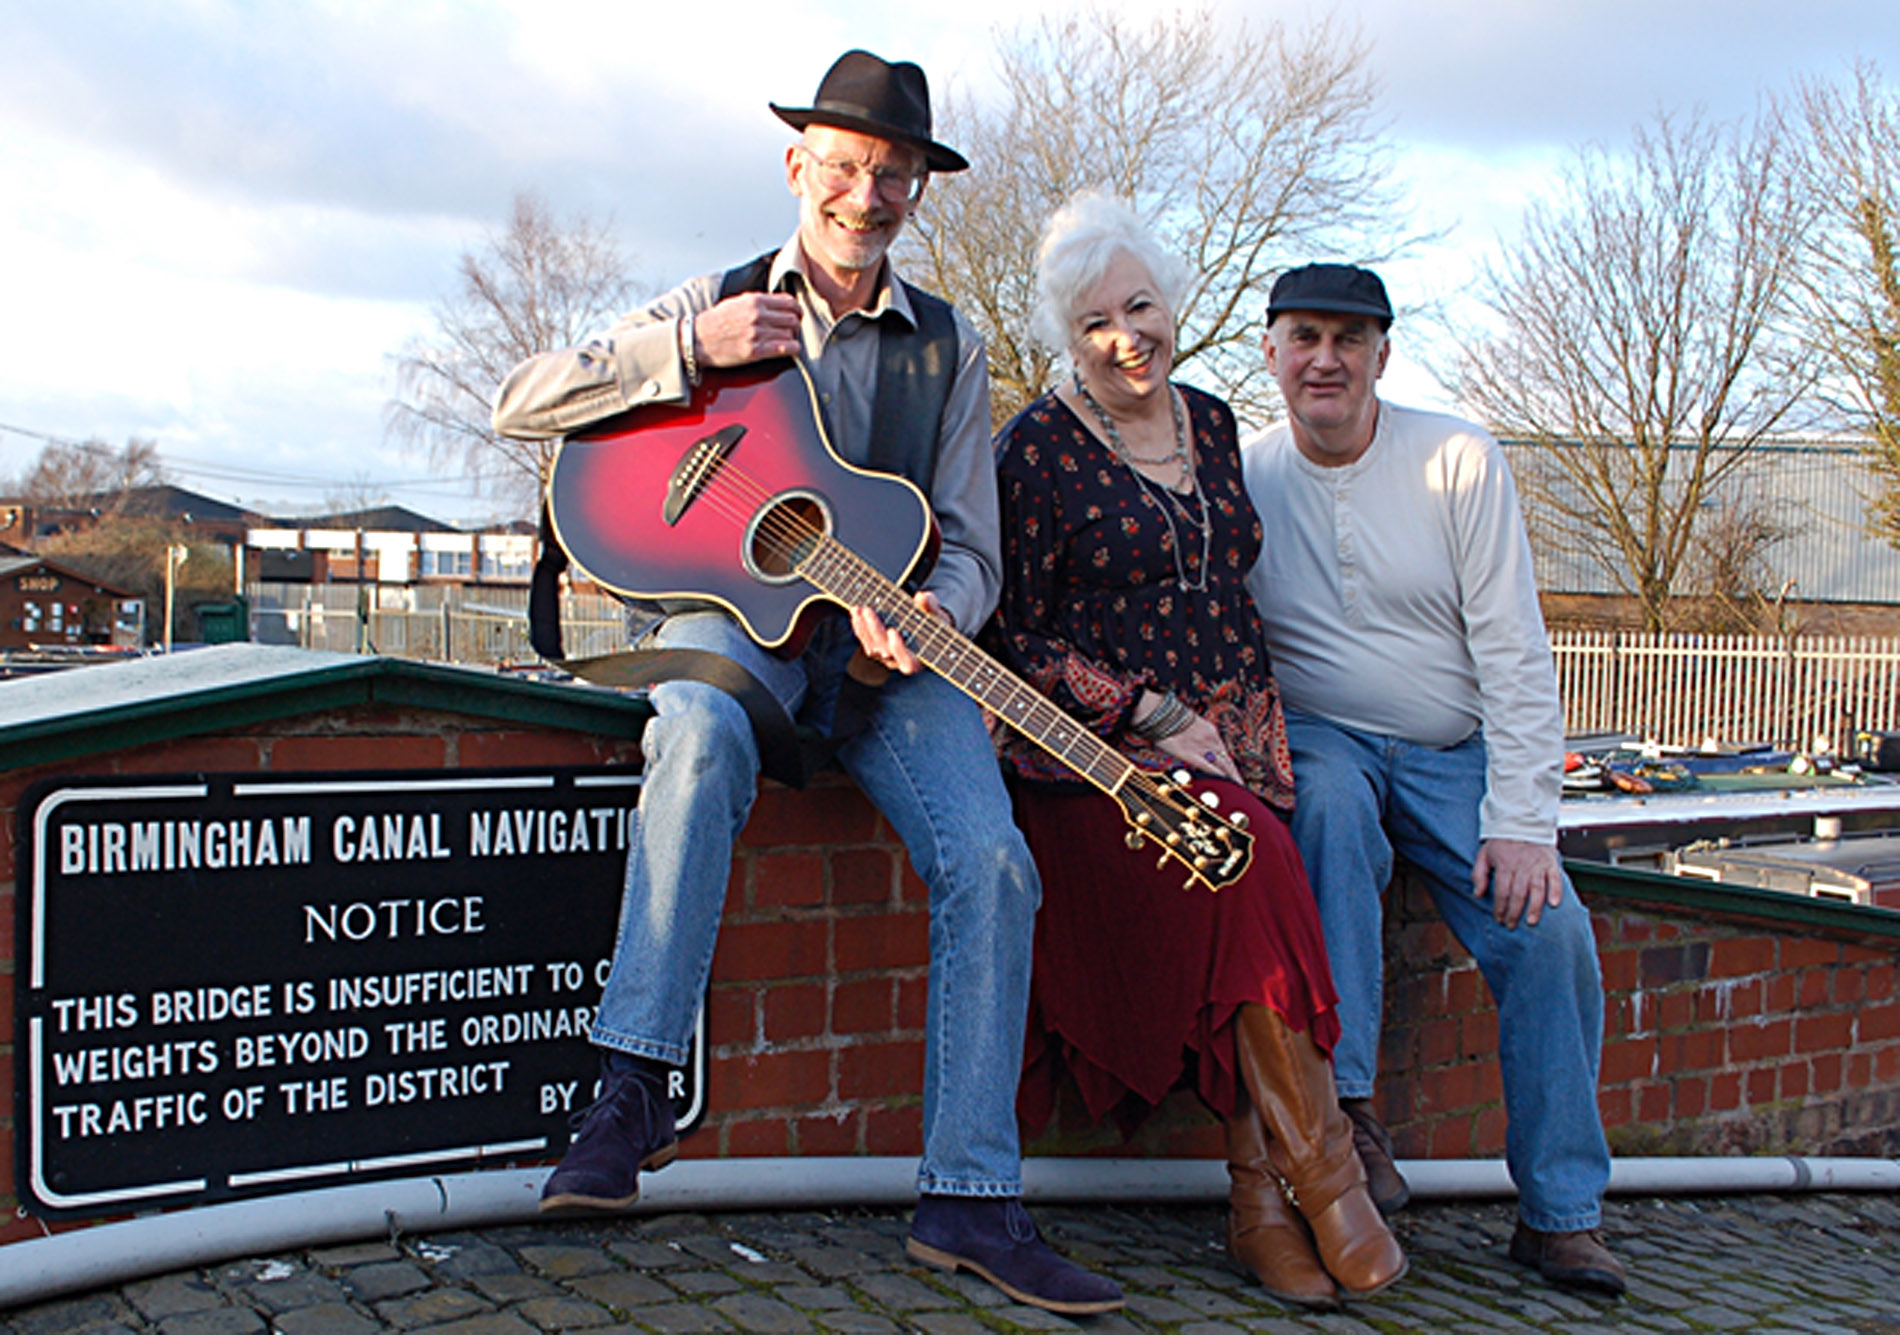 Folk band the Light Side, who will be performing at Lichfield and Hatherton Canals Restoration Trust's Autumn Show